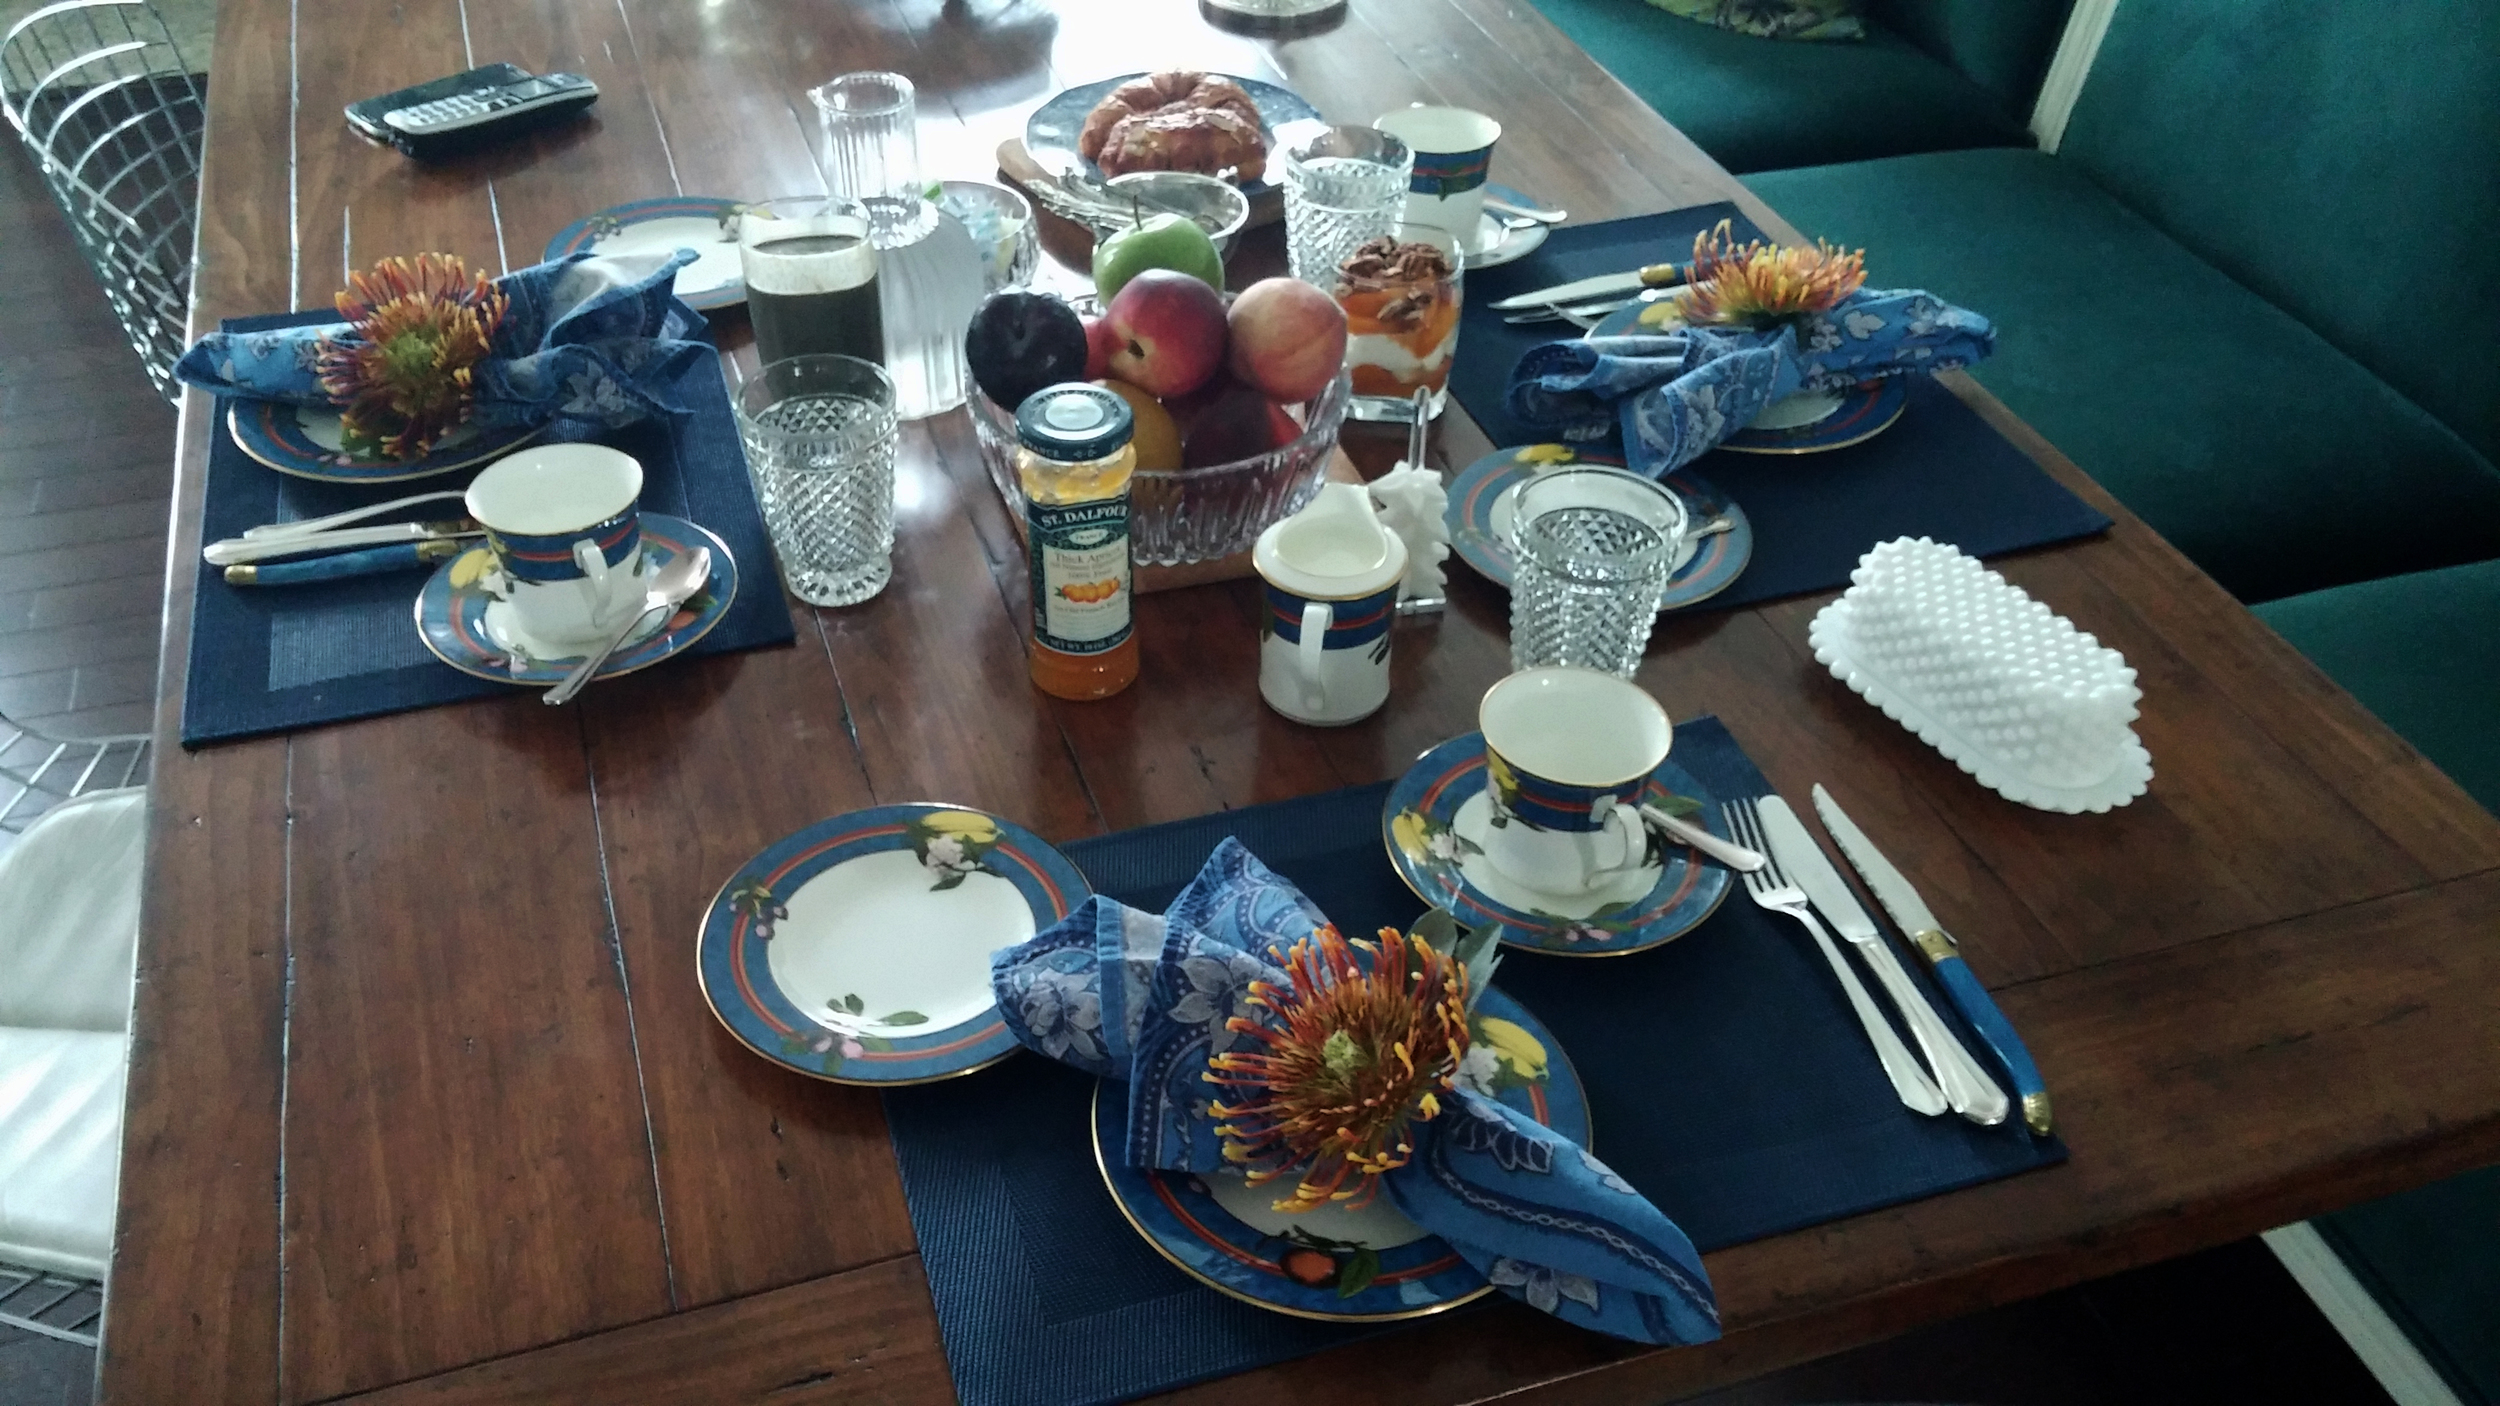 The morning table.